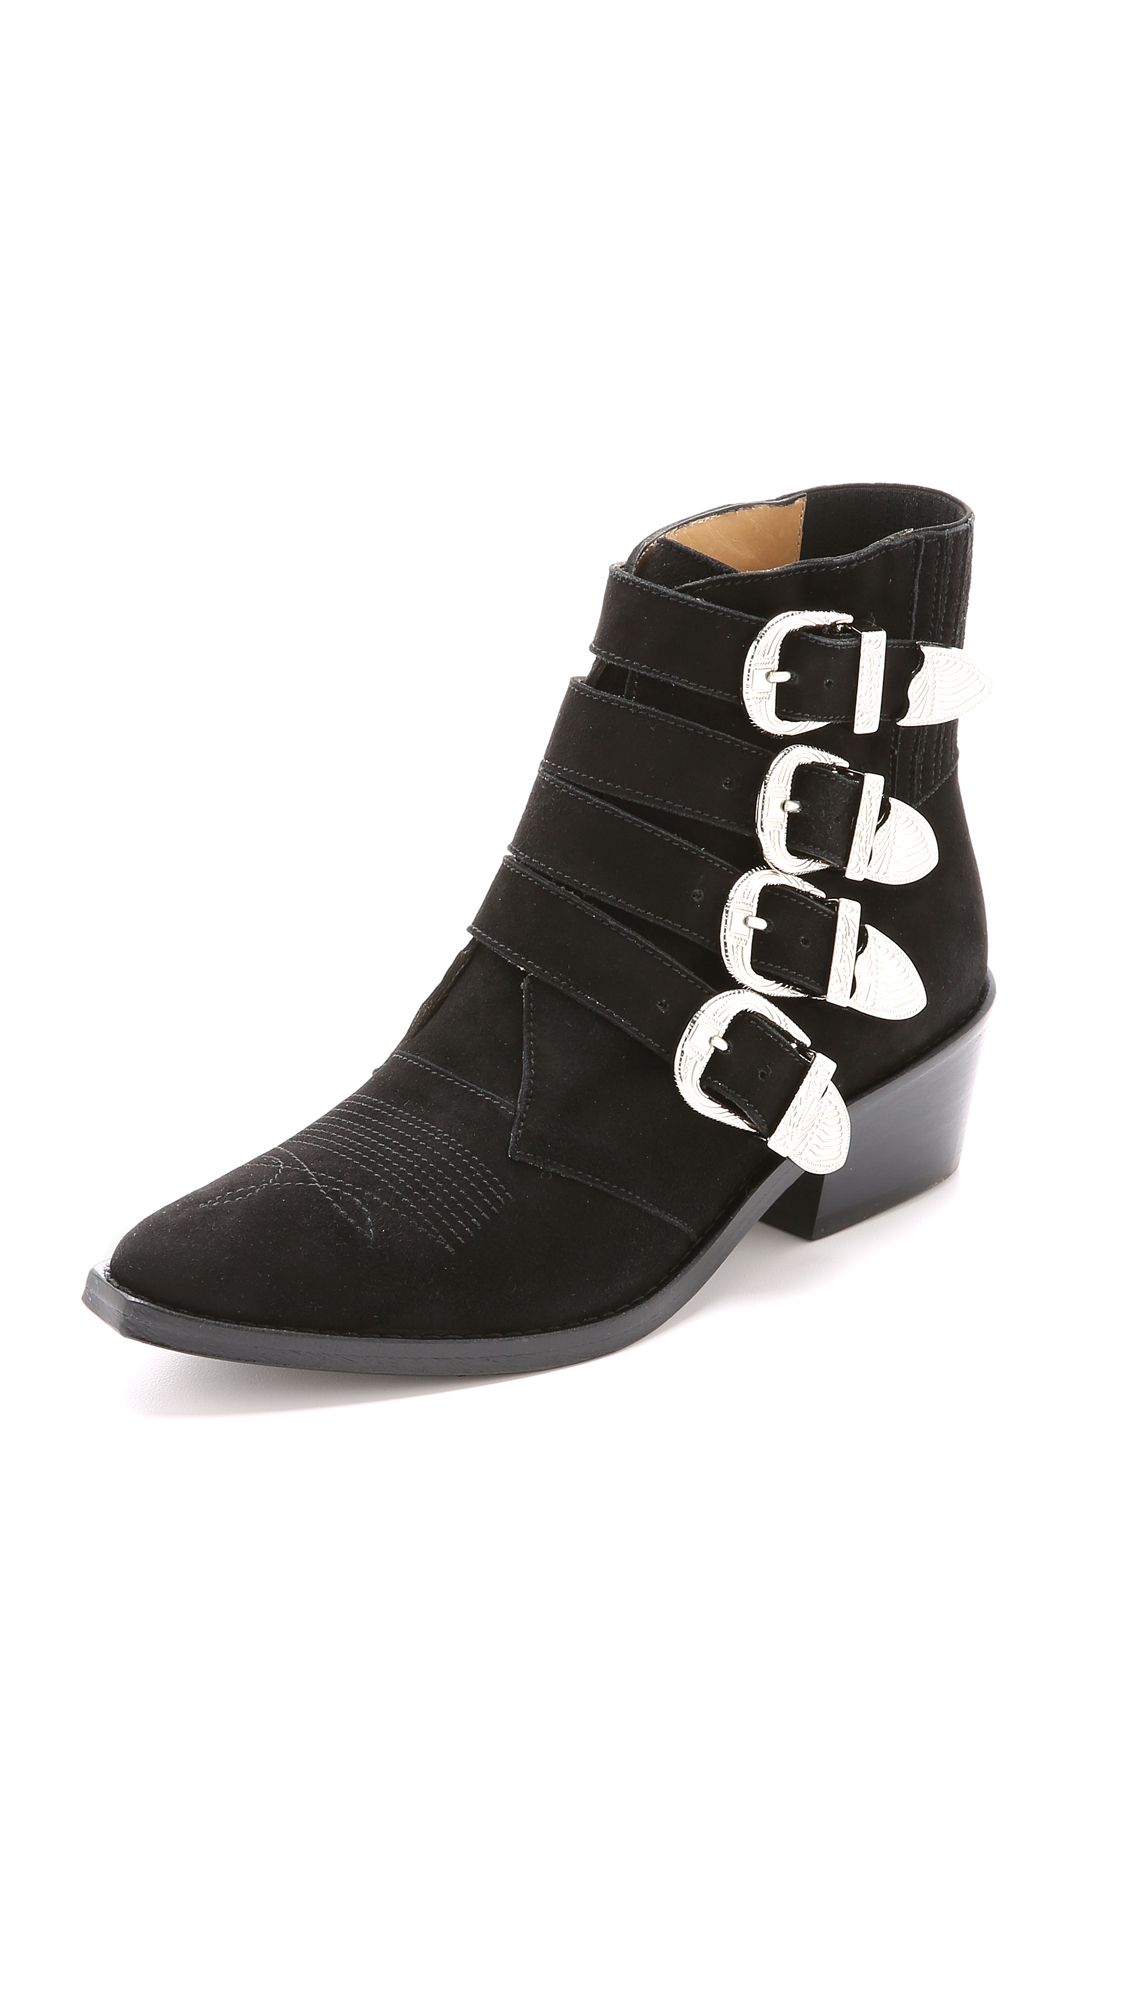 TOGA Buckle Detail Ankle Boots in Black